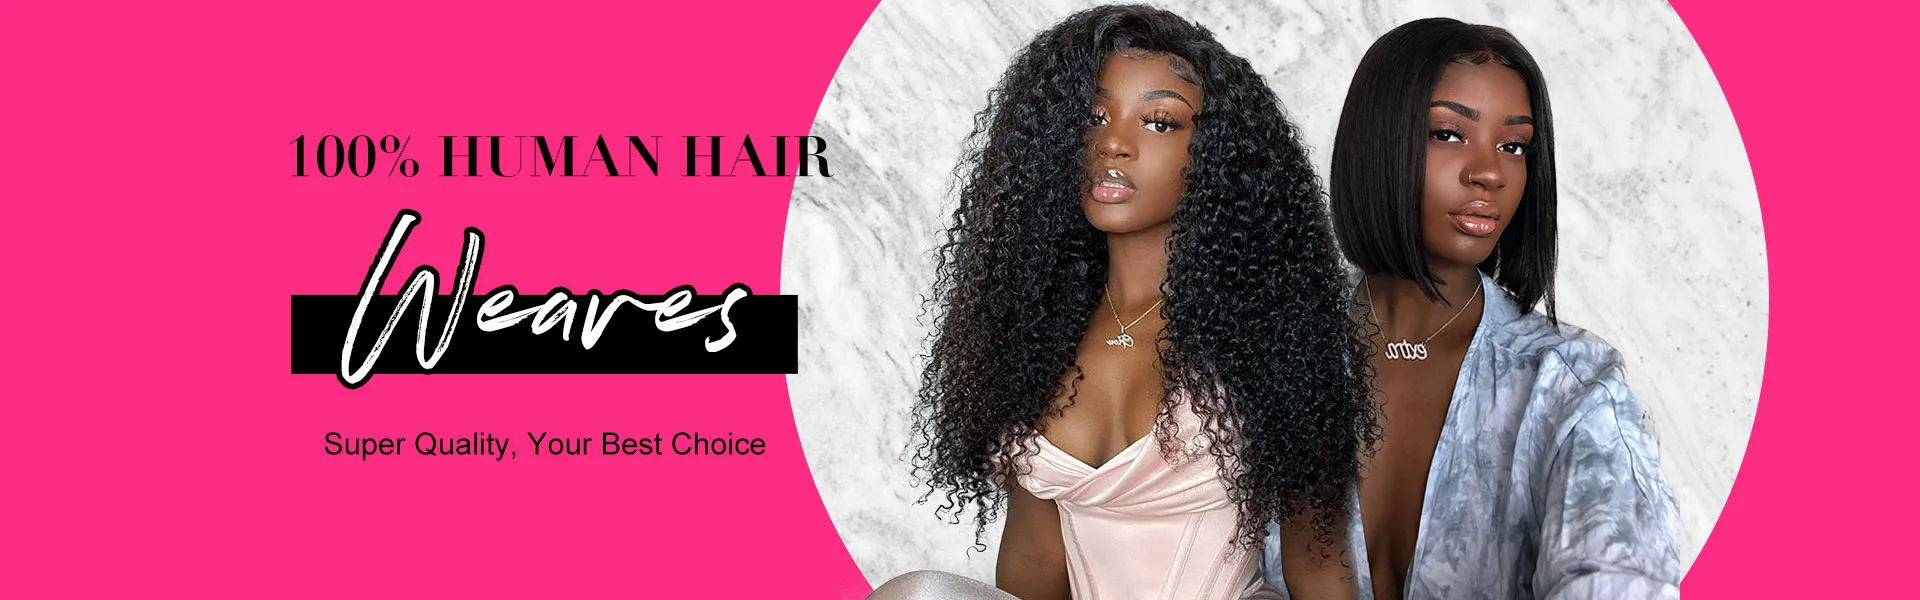 Things You Need to Consider Before Buying a Wig